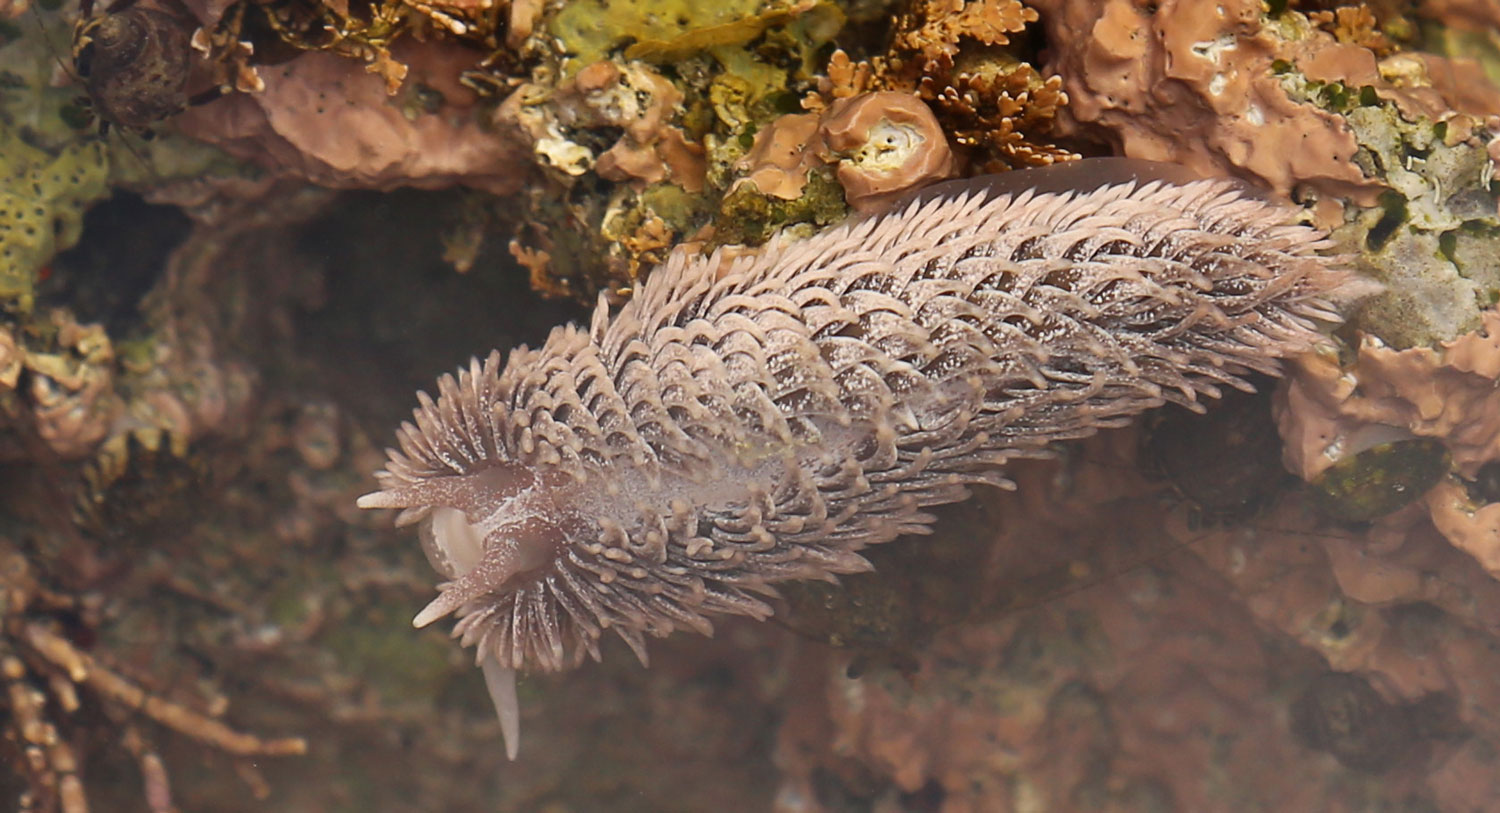 Gray sea slug in Southeast Alaska